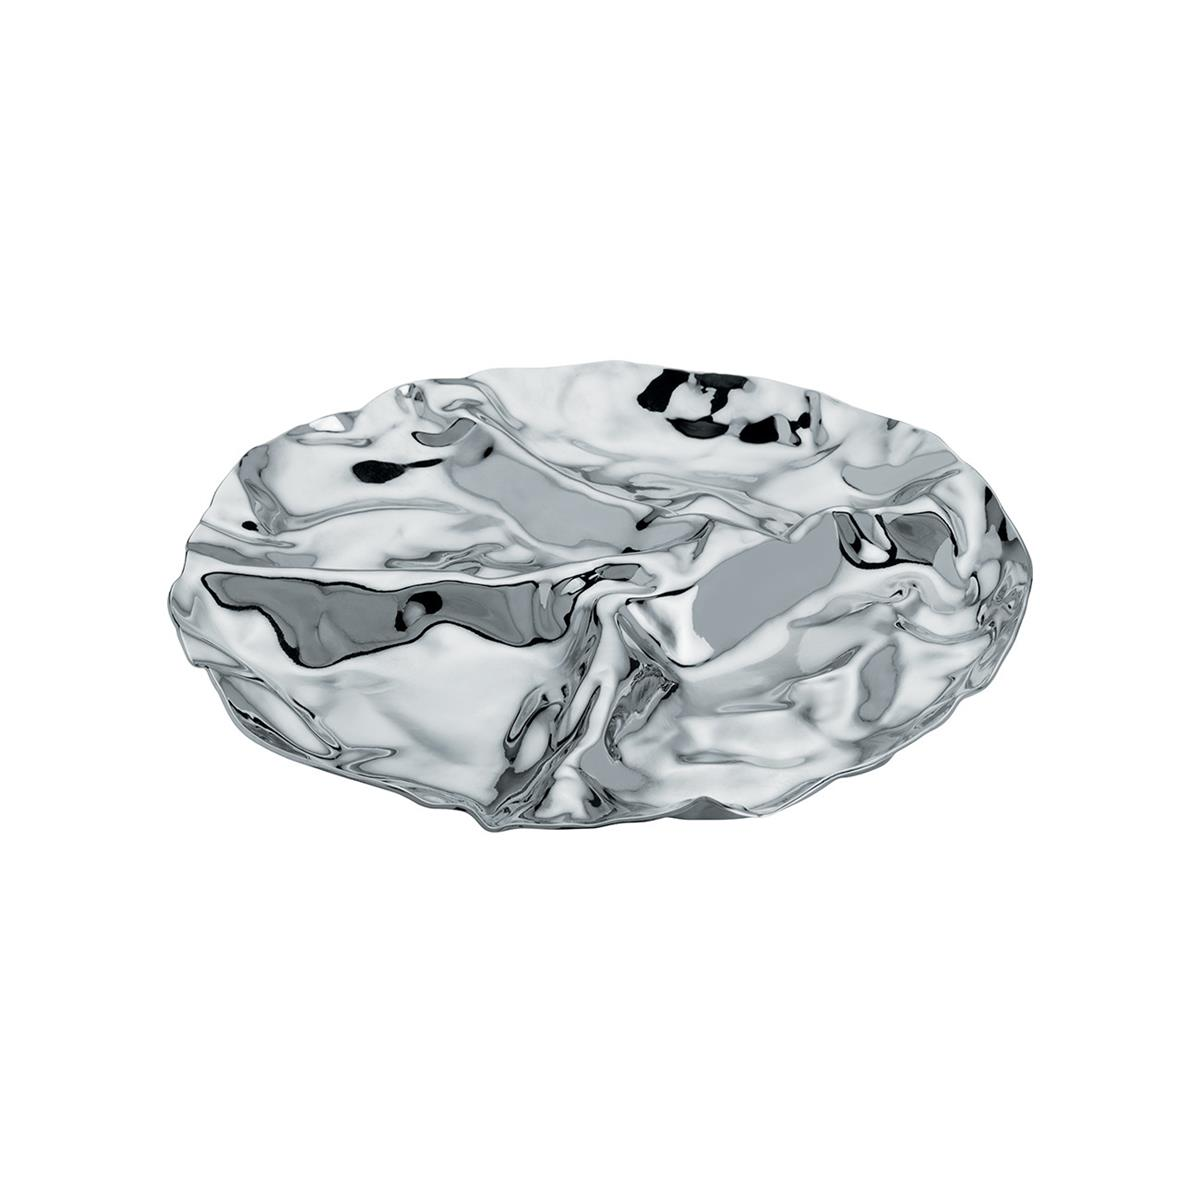 Alessi-Pepa Antipastiera with four compartments in 18/10 polished stainless steel